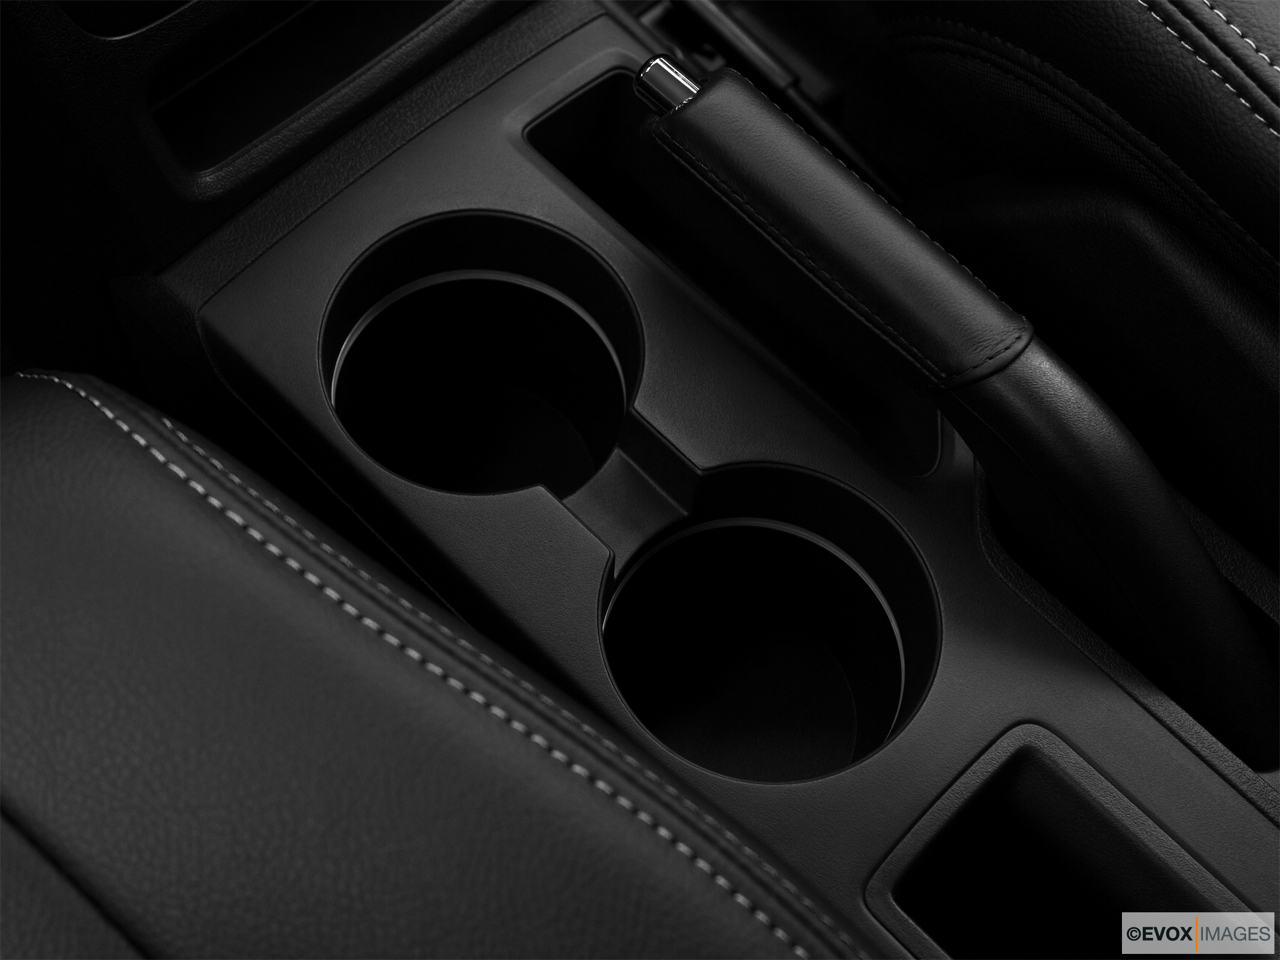 2010 Jeep Patriot Limited Cup holders.